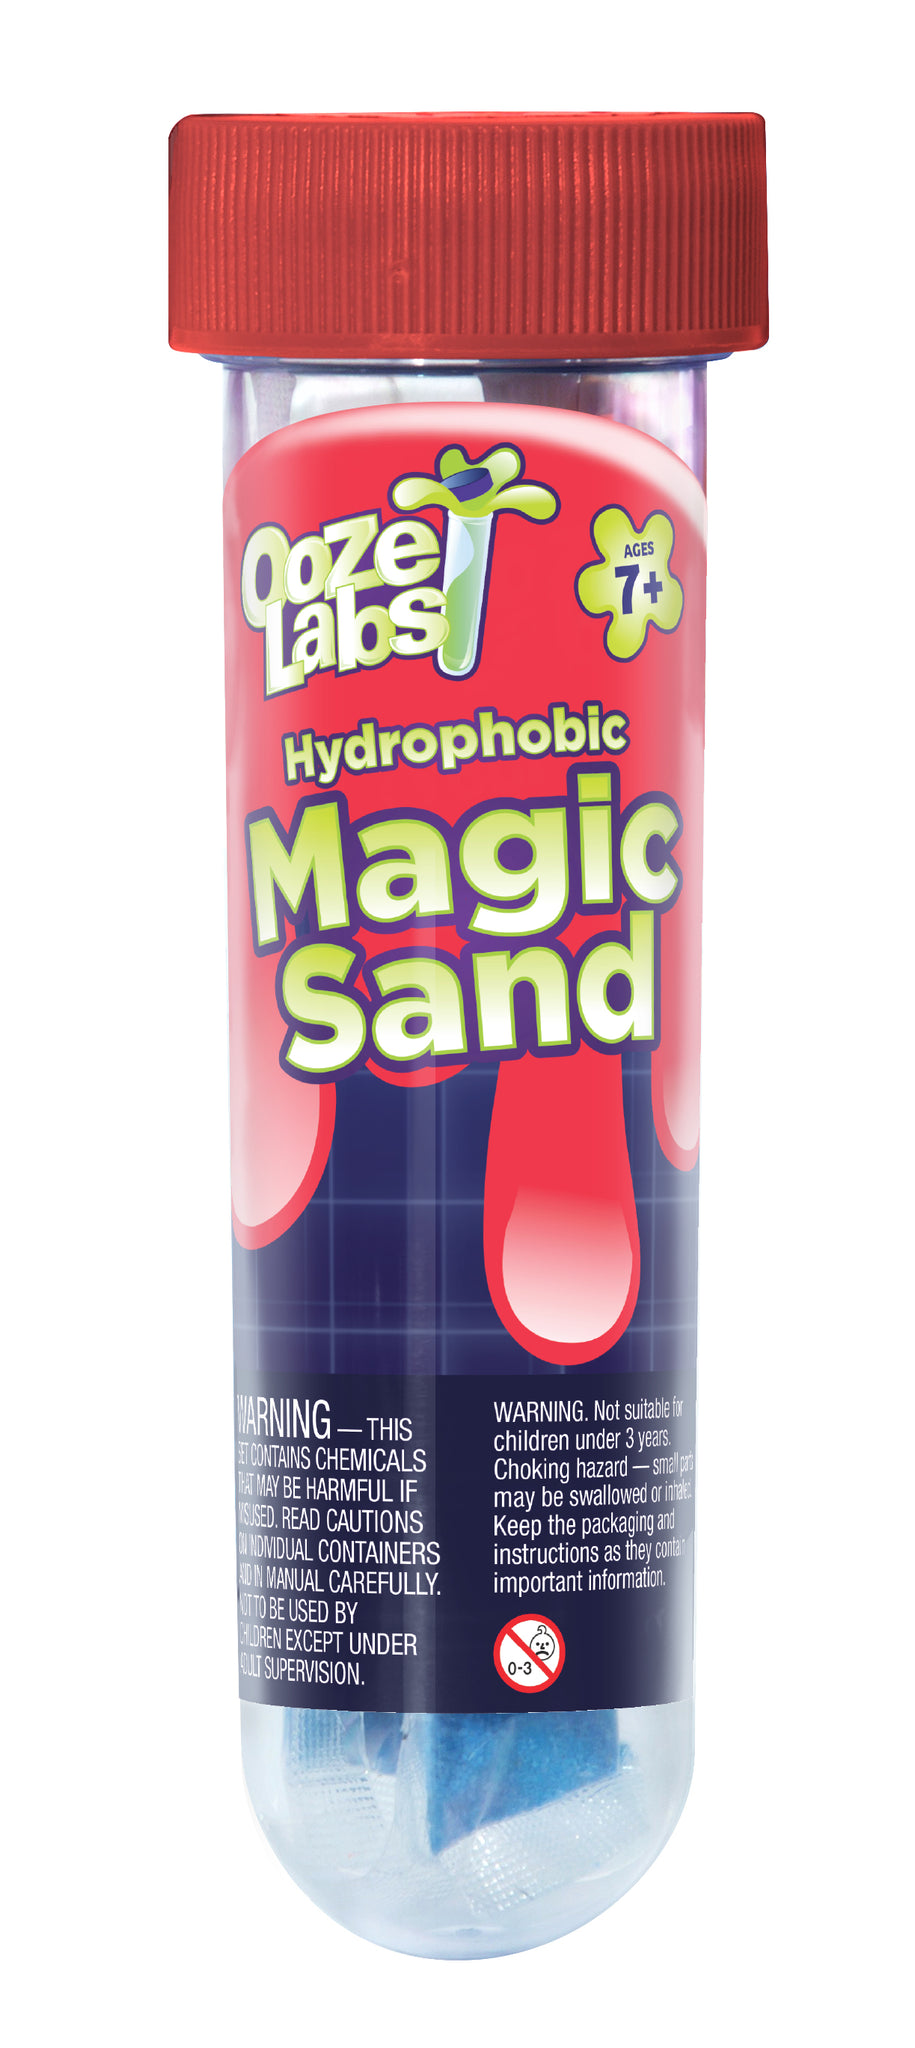 Ooze Lab 3: Magic Sand